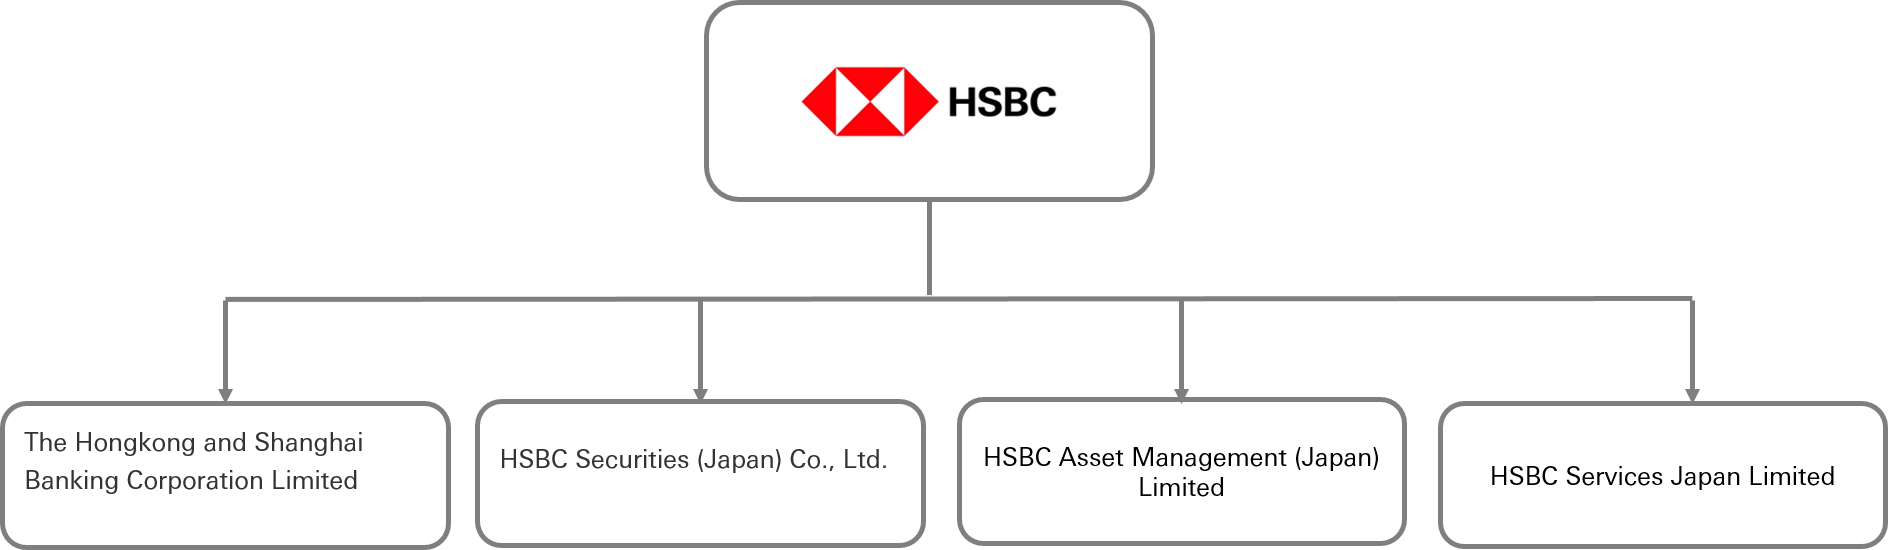 HSBC in Japan - About HSBC | HSBC Japan